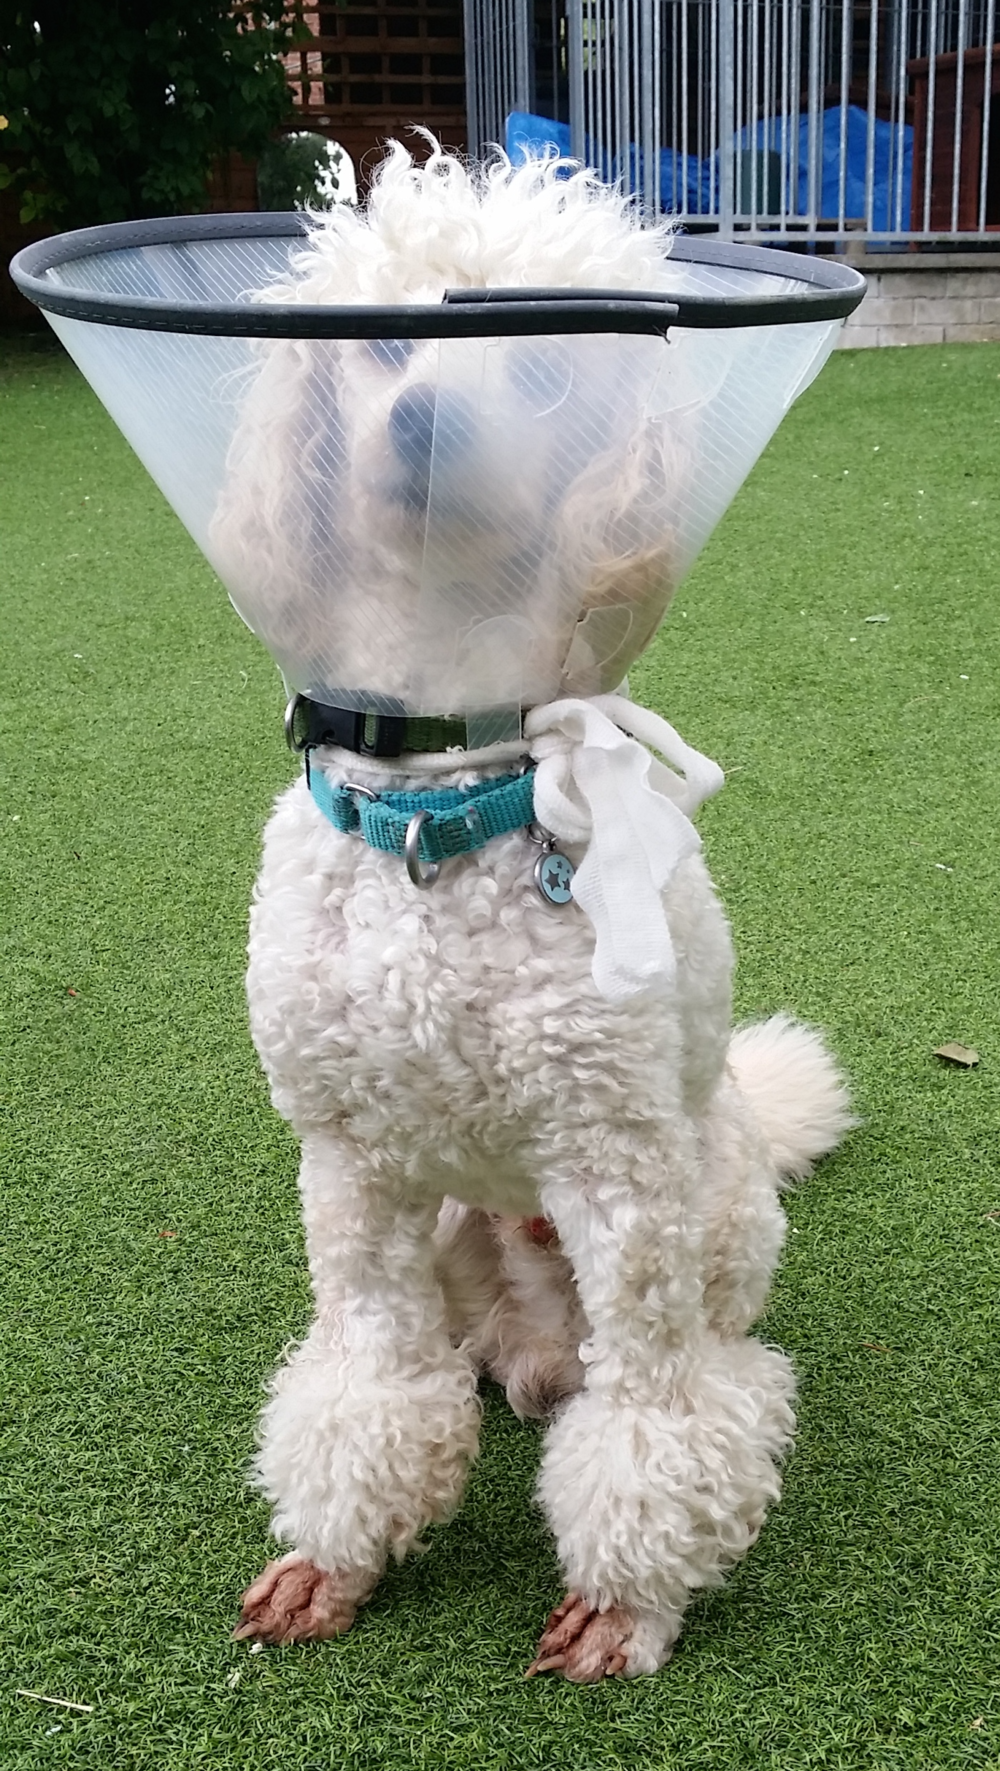 Coco looks like Buzz Lightyear in his bonnet! You have to protect the wound to promote healing, but there are many ways to do this | FREE EMAIL COURSE | dog training, dog health | #doghealth, #dogbehavior, #dogscratching | www.brilliantfamilydog.com